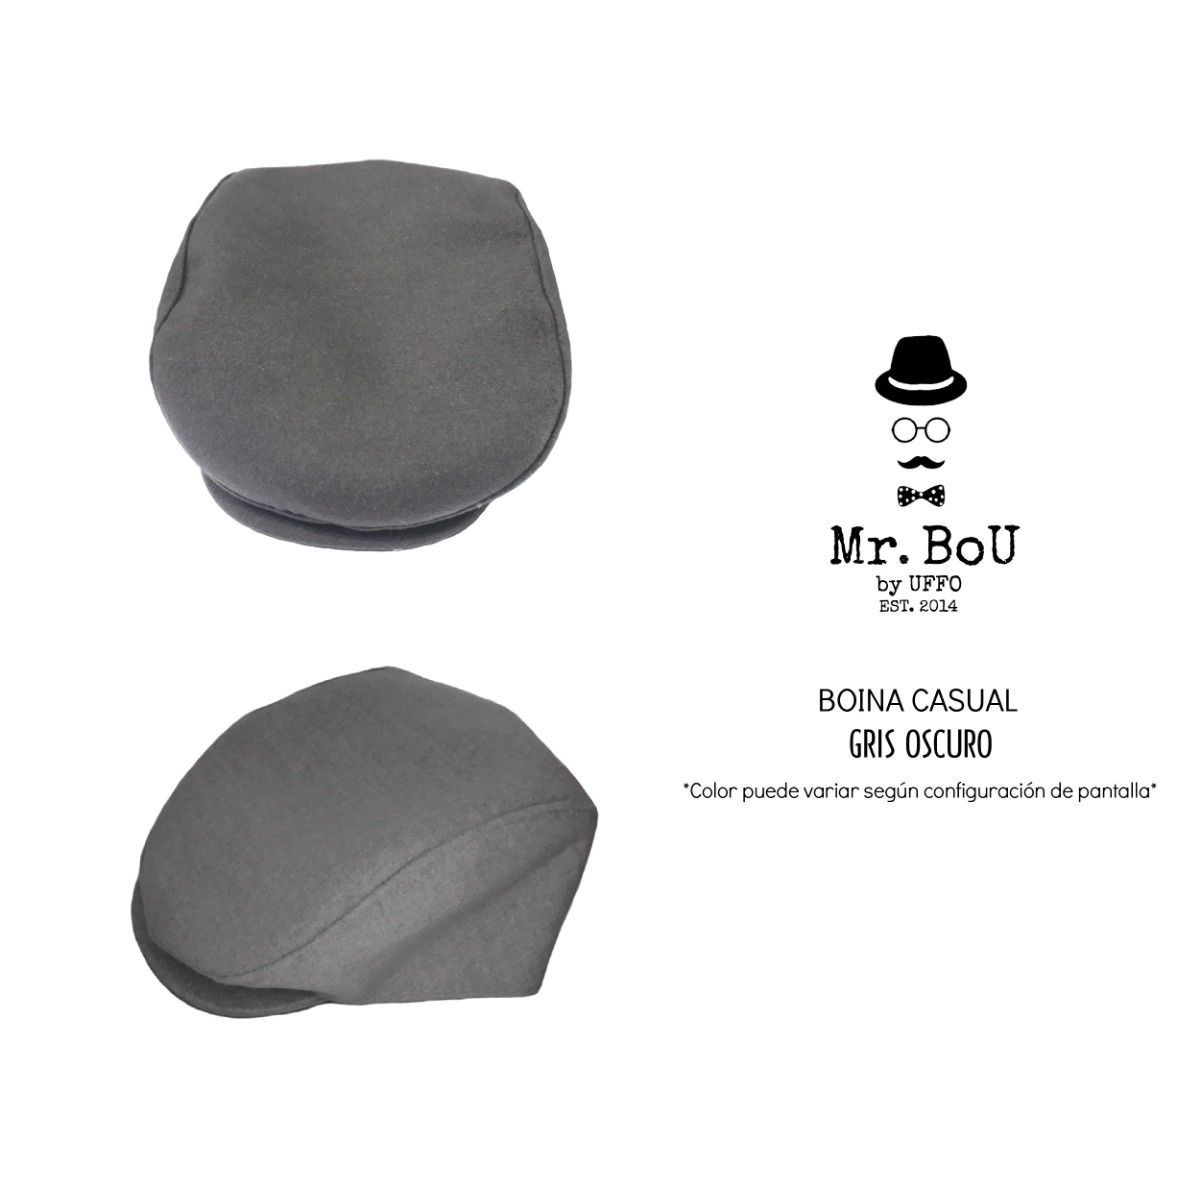 Boina Unisex Hombre Mujer Vintage Gorro Abuelo Bc05 Mr.bou - S  34 ... a9214aa70db